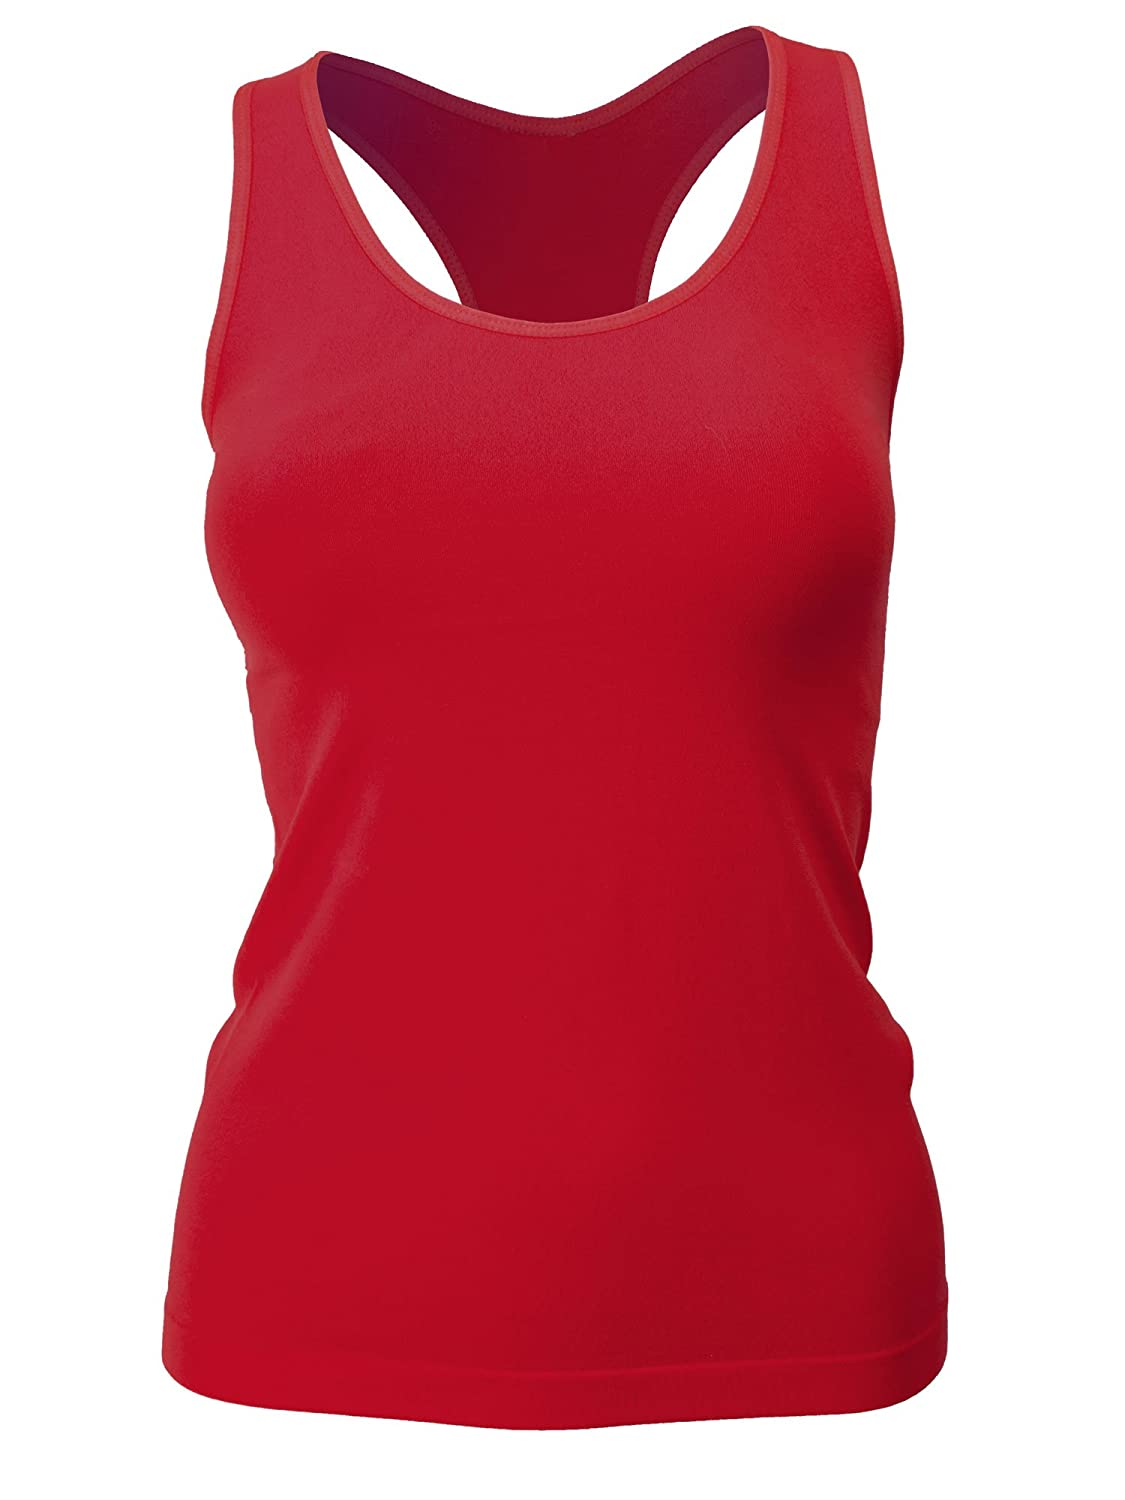 Red Bene Women's Solid Color Smooth Racer Back Tank Top RBM.3172